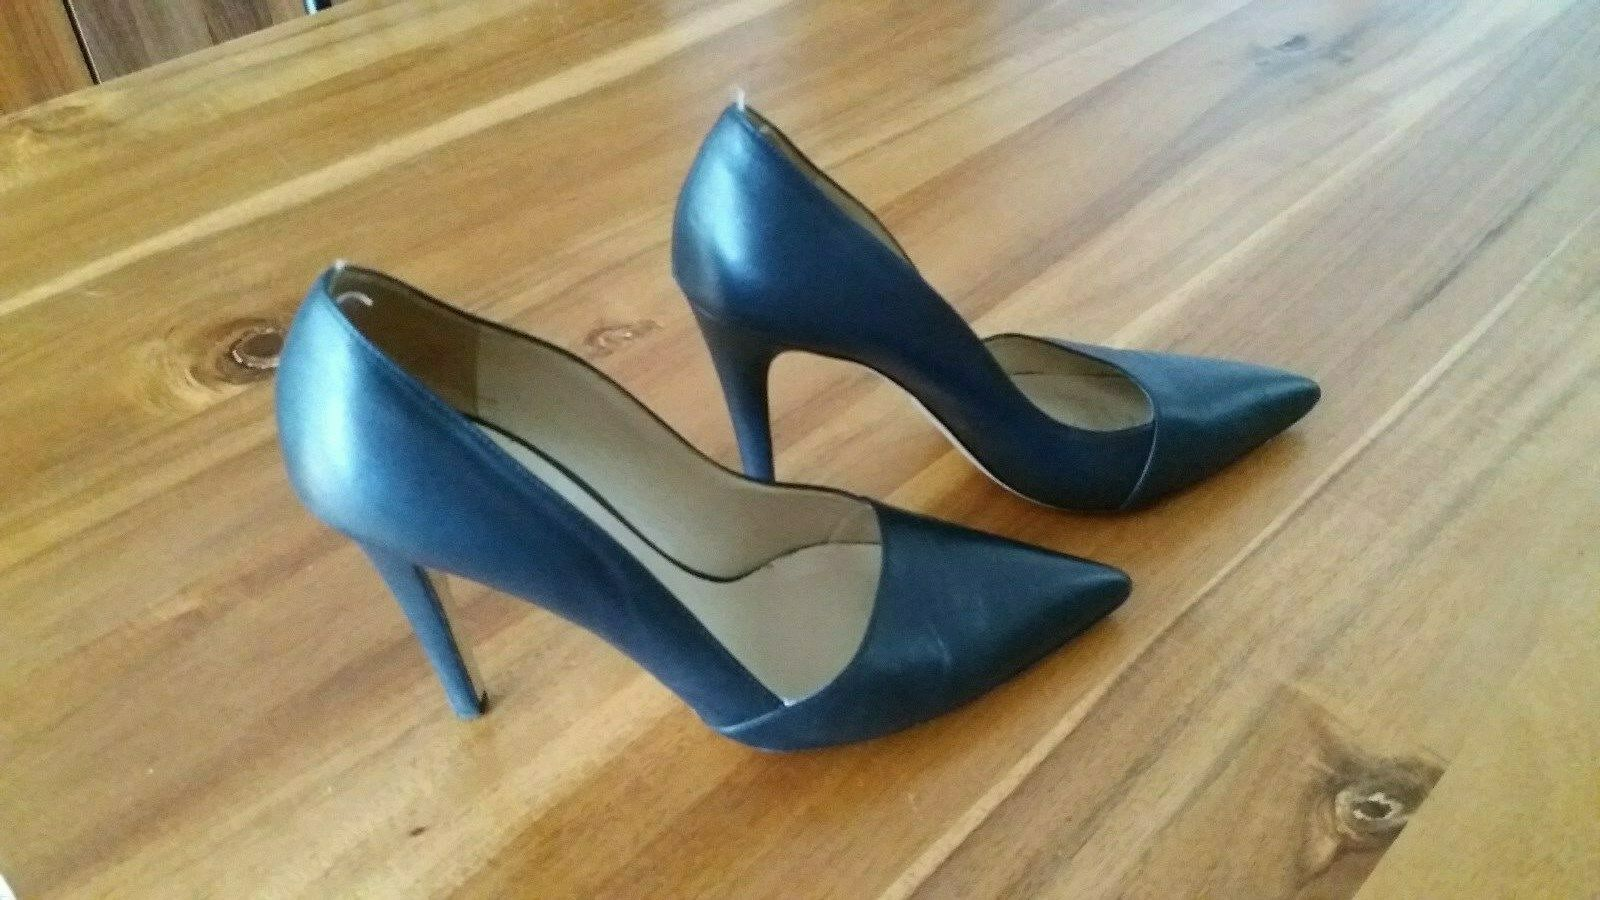 SAKS 5th Avenue Schwarze Leder Pumps Stilettos gr.38 elegante Schuhe Business